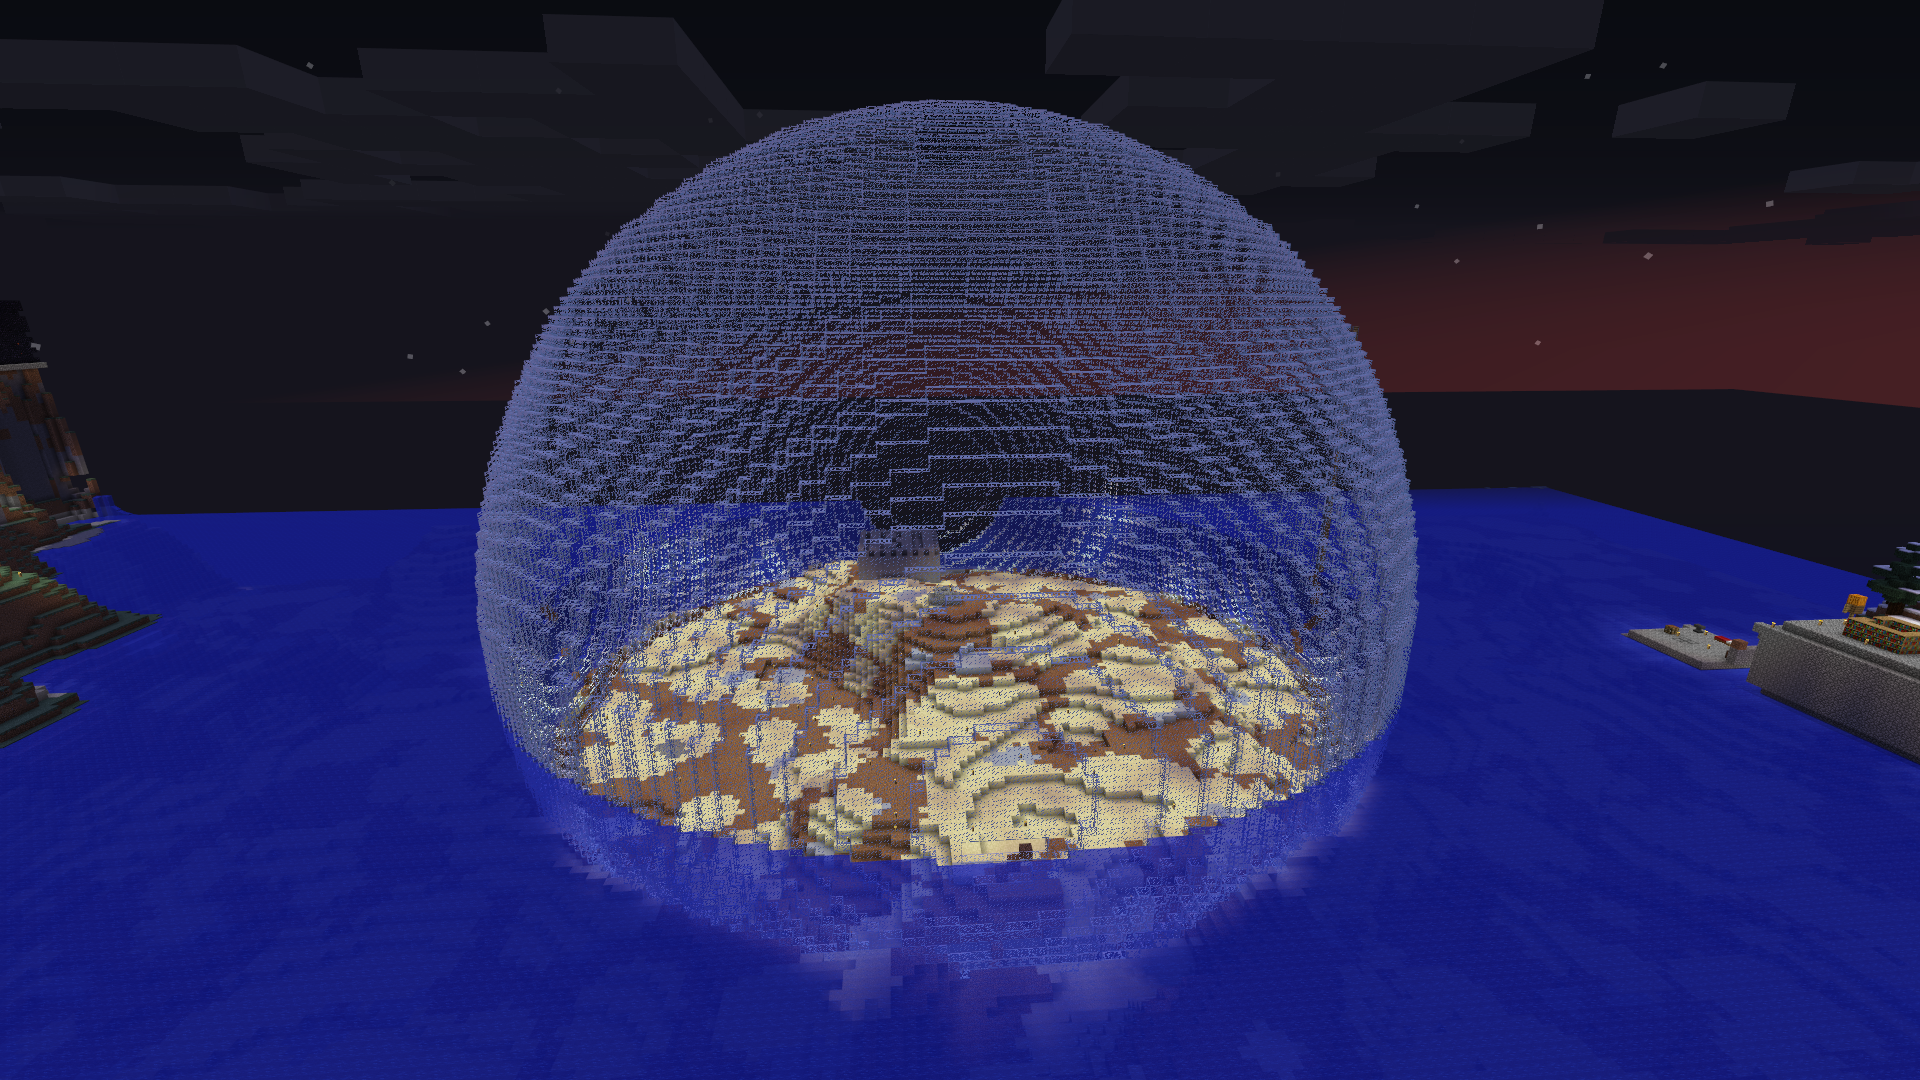 The sphere is compleat!